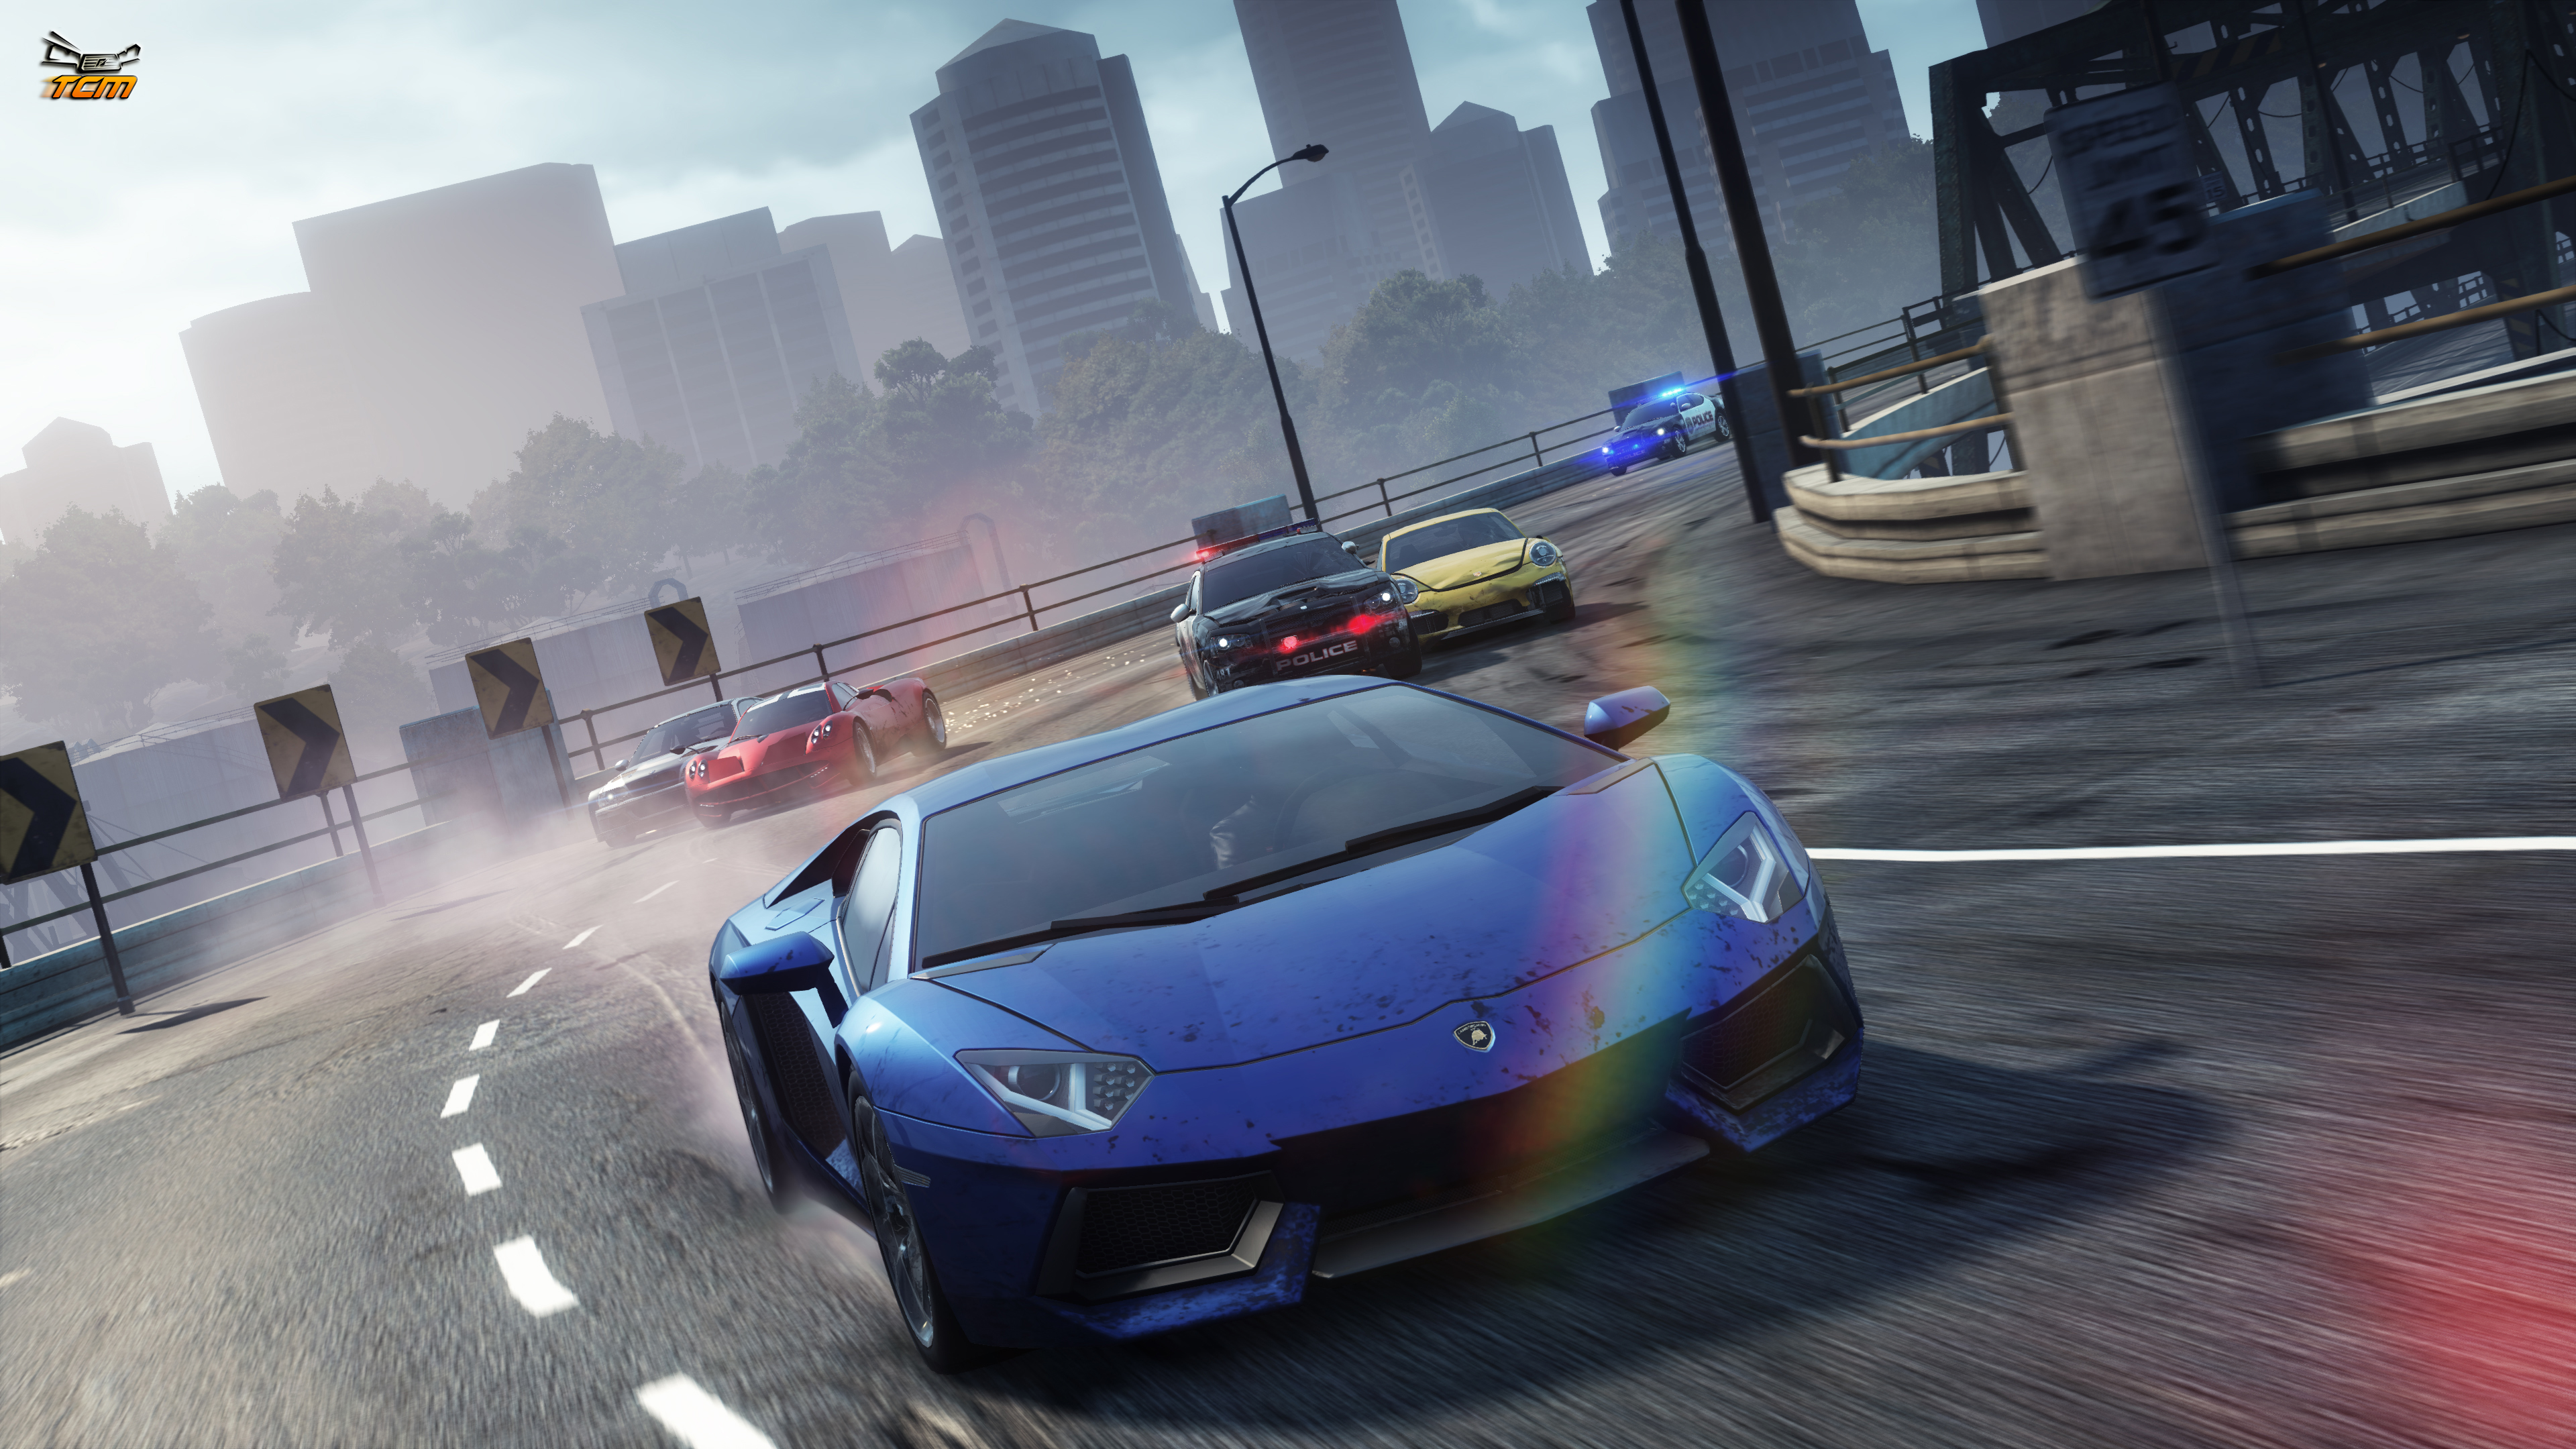 Ford Need For Speed HD Wallpaper